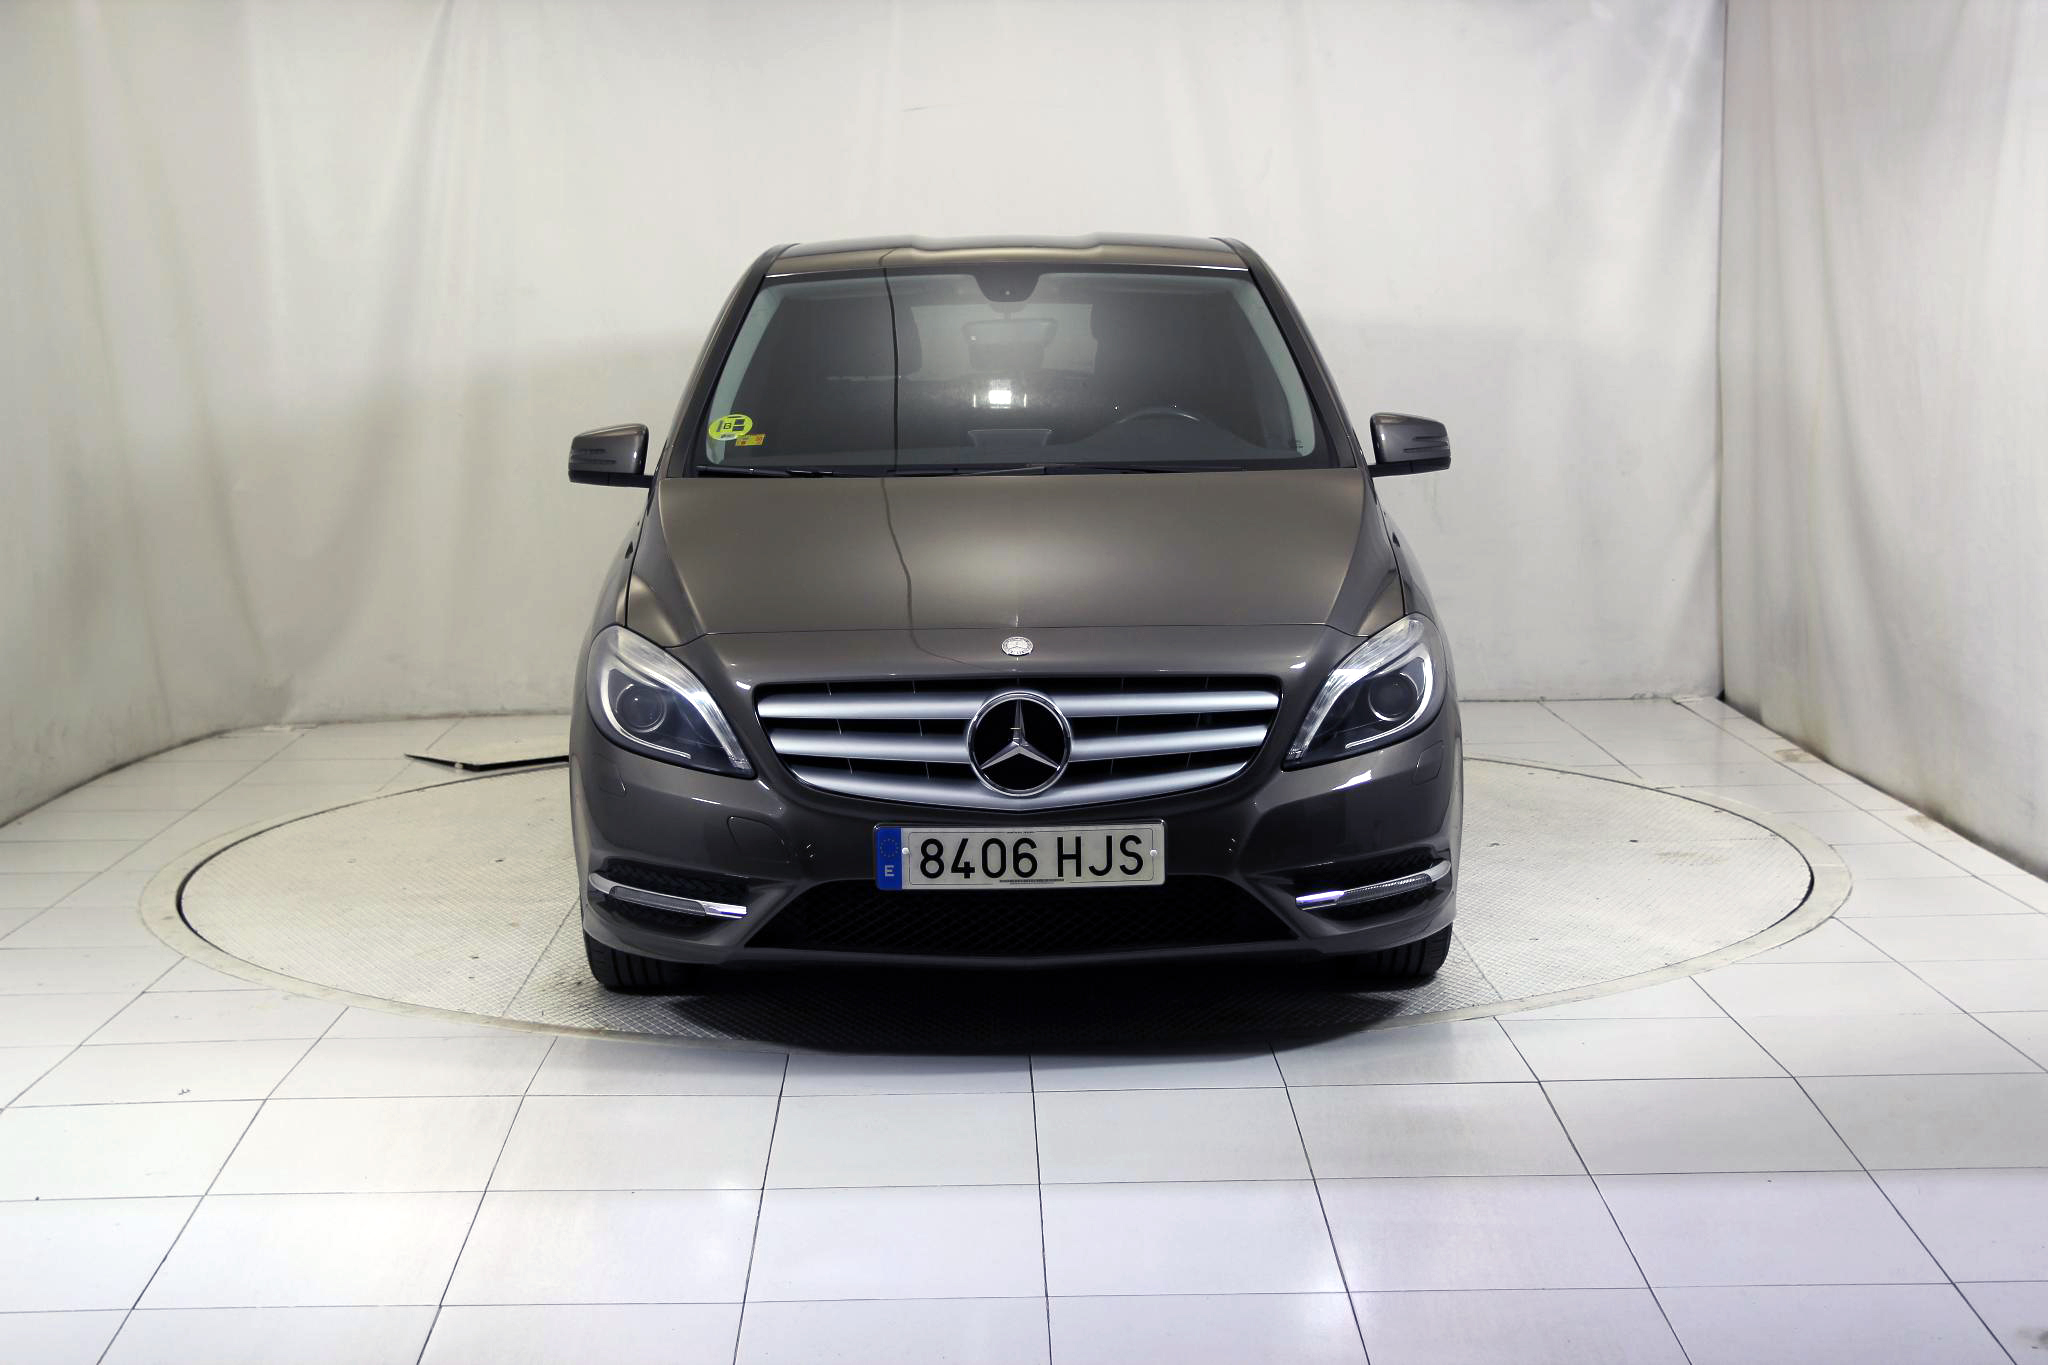 Mercedes-Benz Clase B CLASE B 180 CDI BLUE EFFICIENCY 5P imagen 3